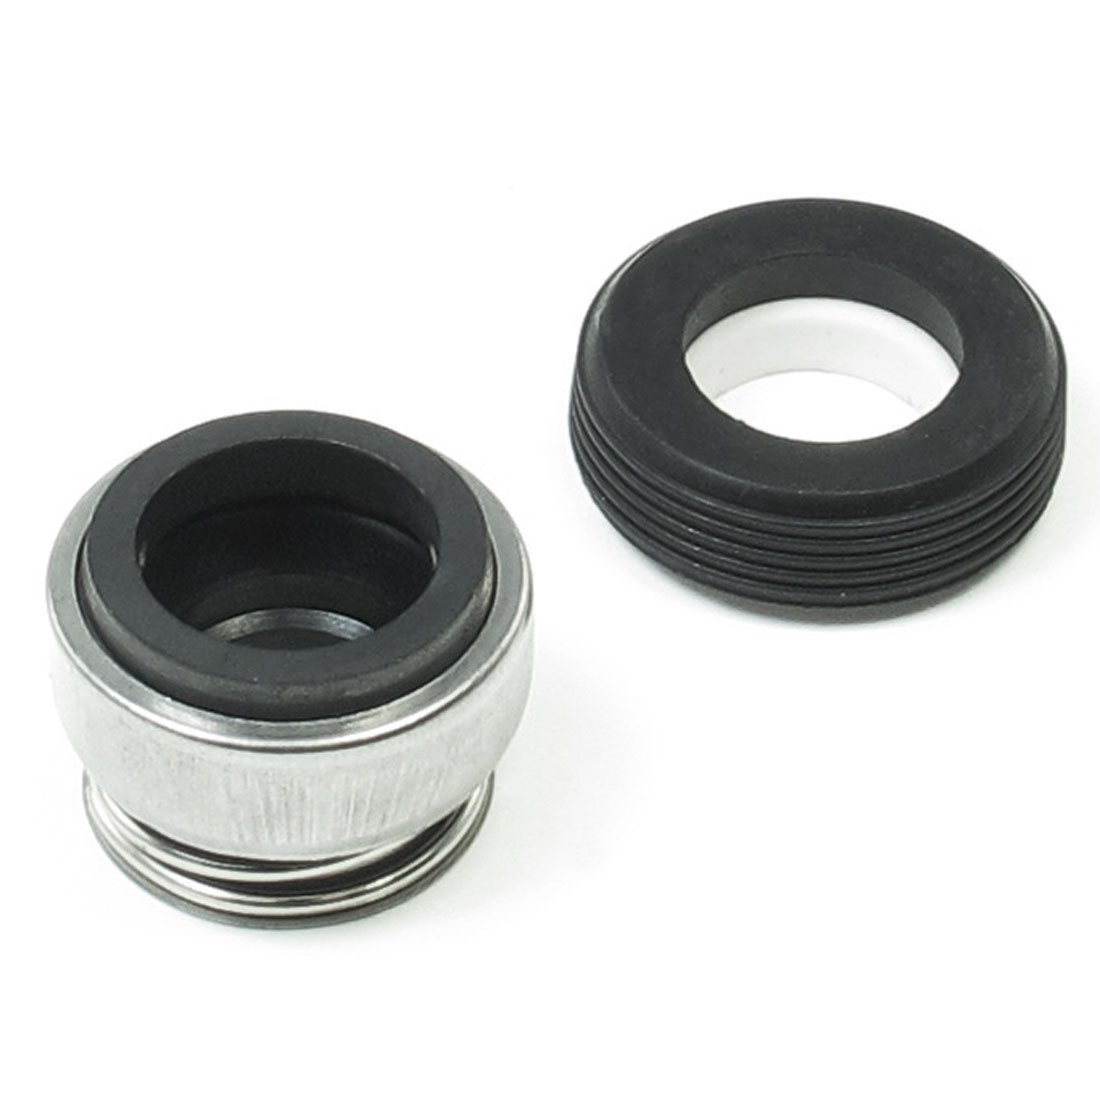 12mm Coiled Spring Rubber Bellow Pump Mechanical Seal 301 12